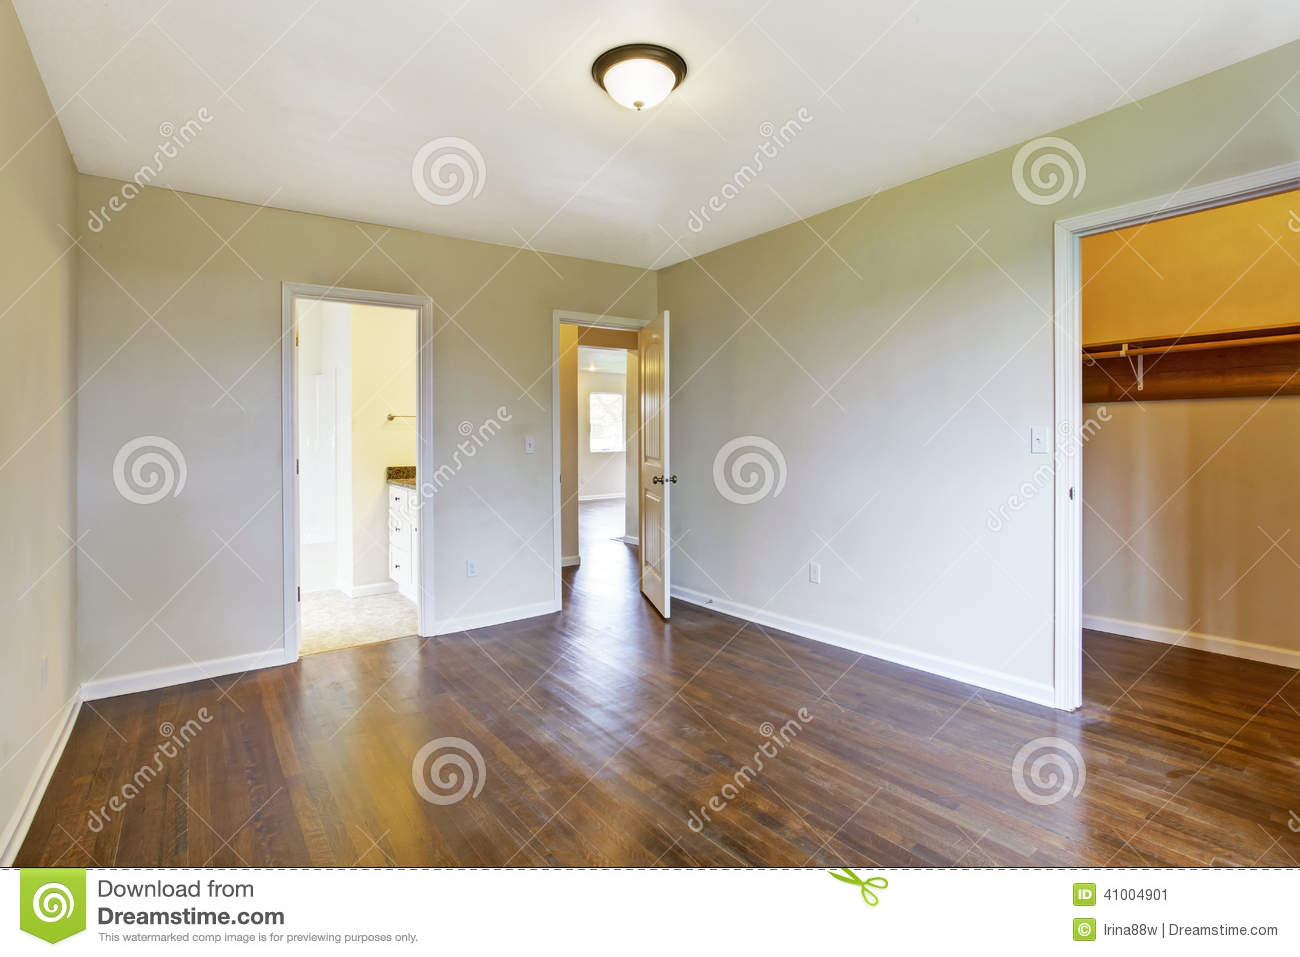 Empty Master Bedroom With Walk In Closet Stock Image Image Of Hardwood Wood 41004901